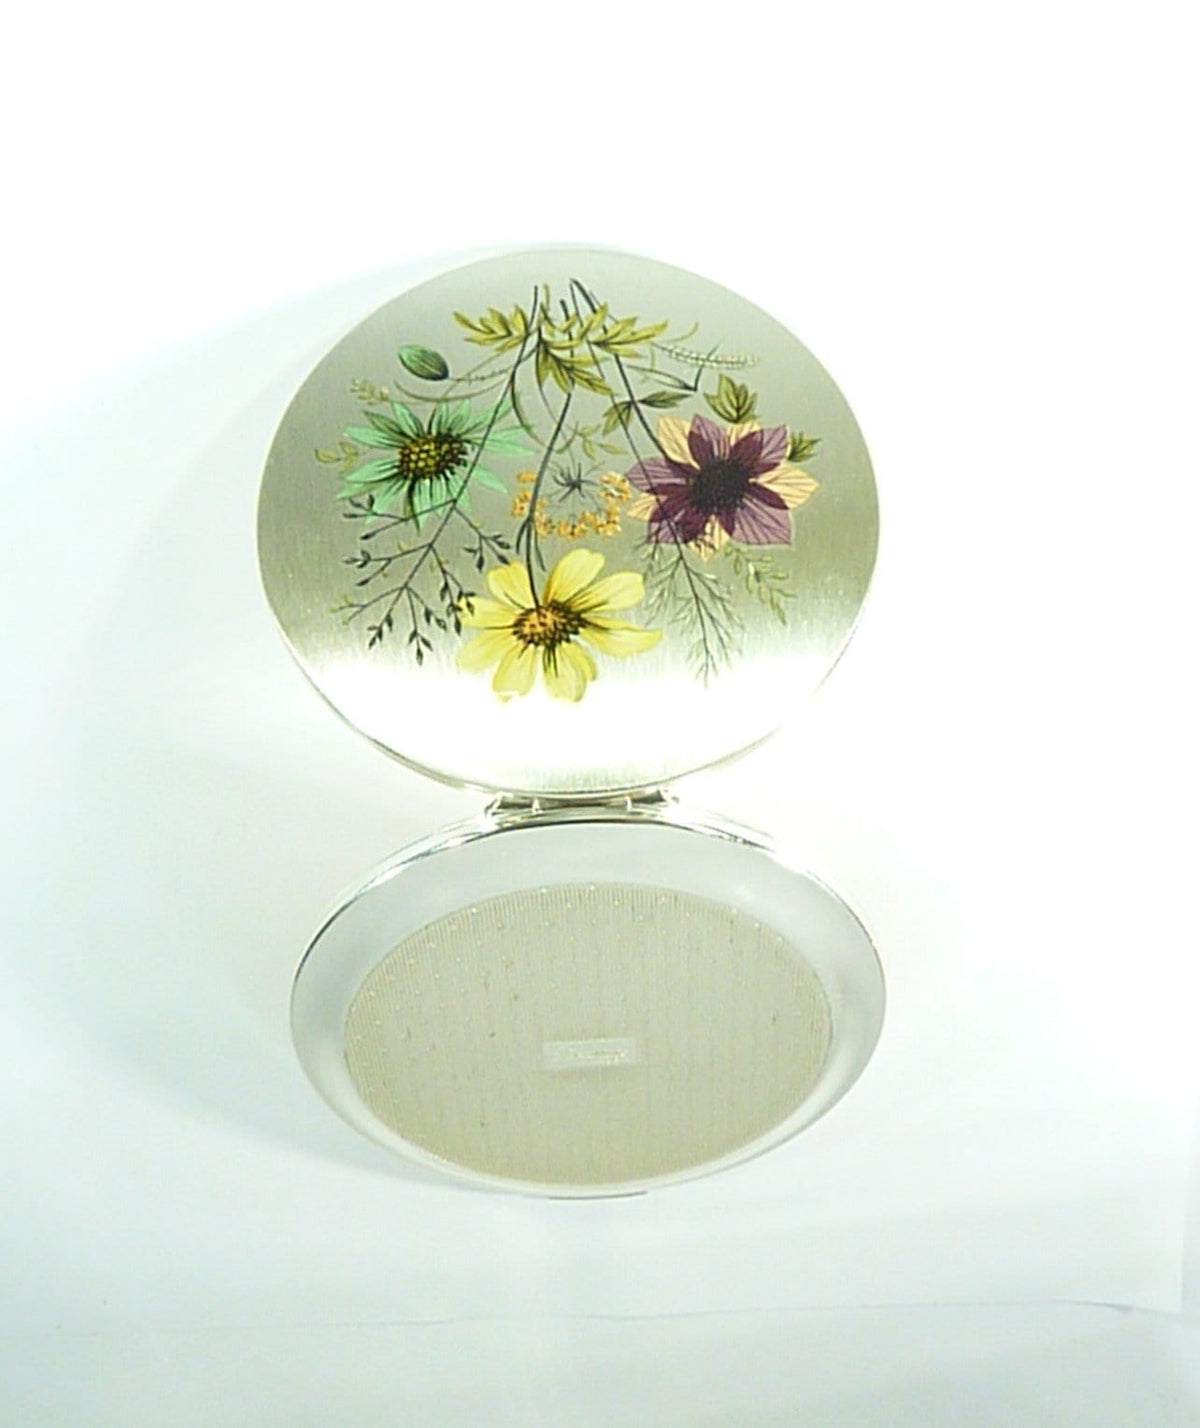 Unused Boxed Vintage Compact Mirror